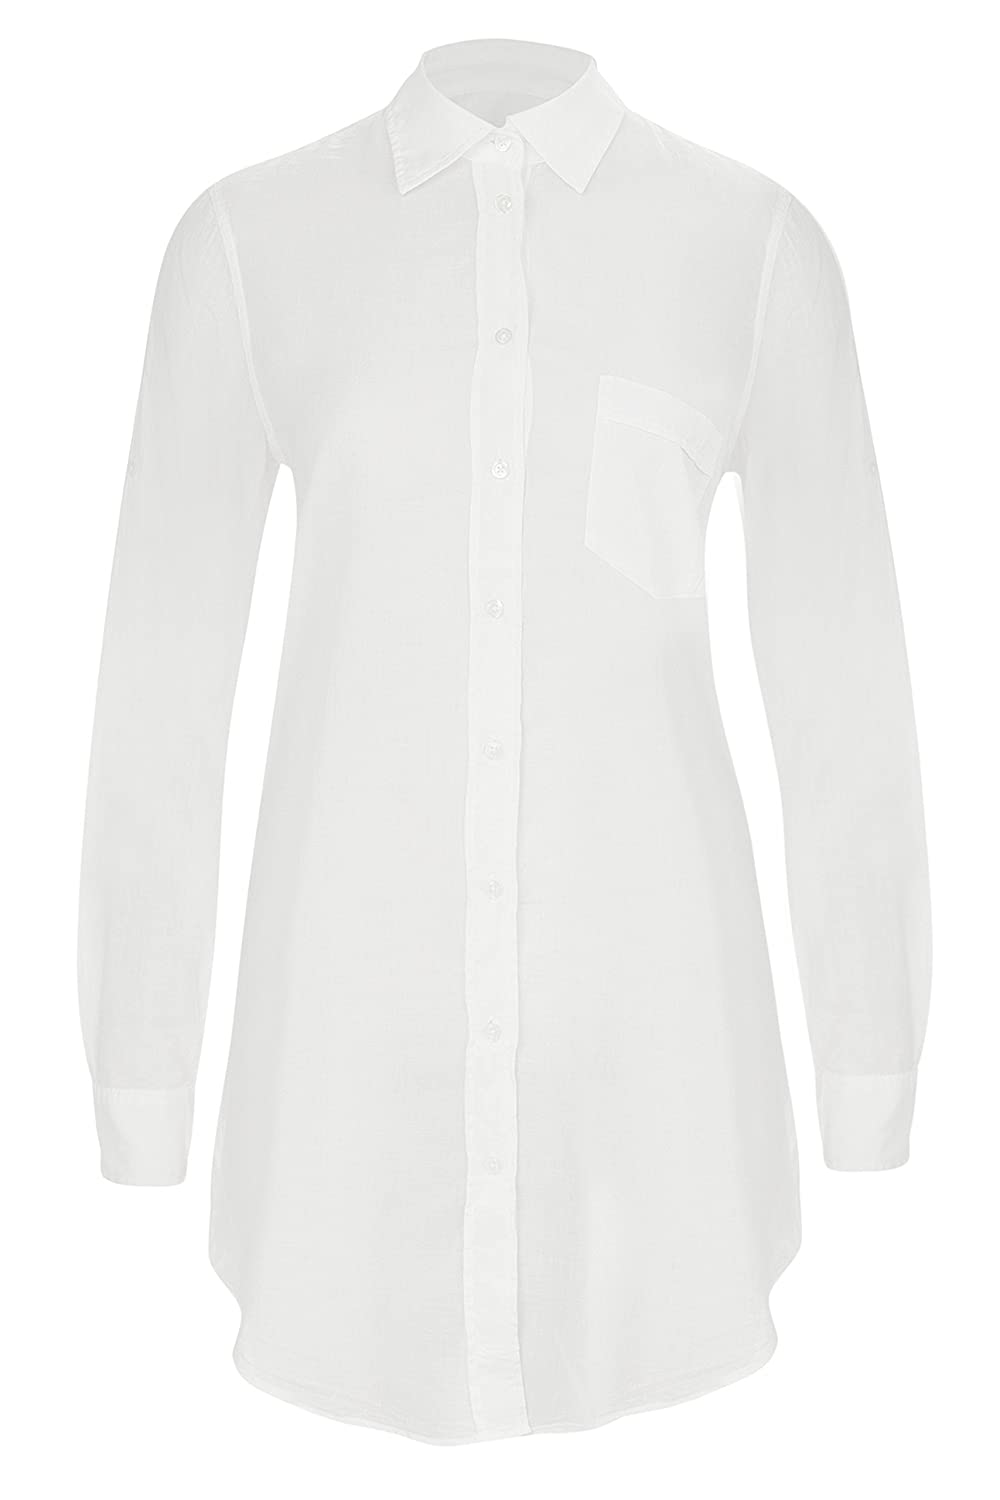 0039 Italy Women's Tunic Classic Blouse white Wei?